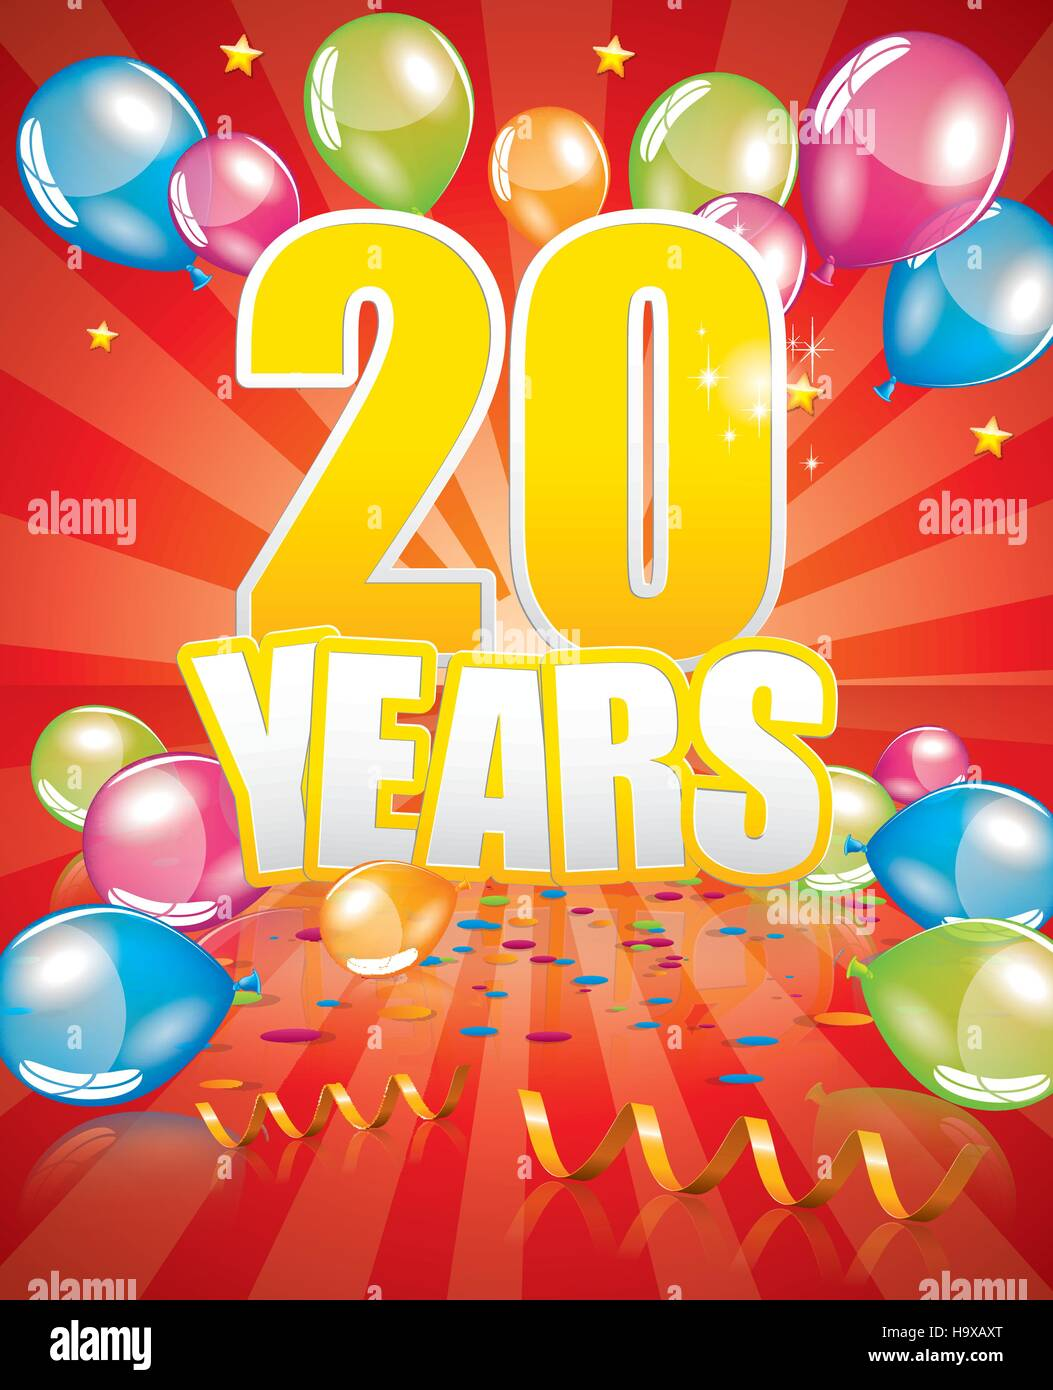 20 years birthday card full vector elements - Stock Vector